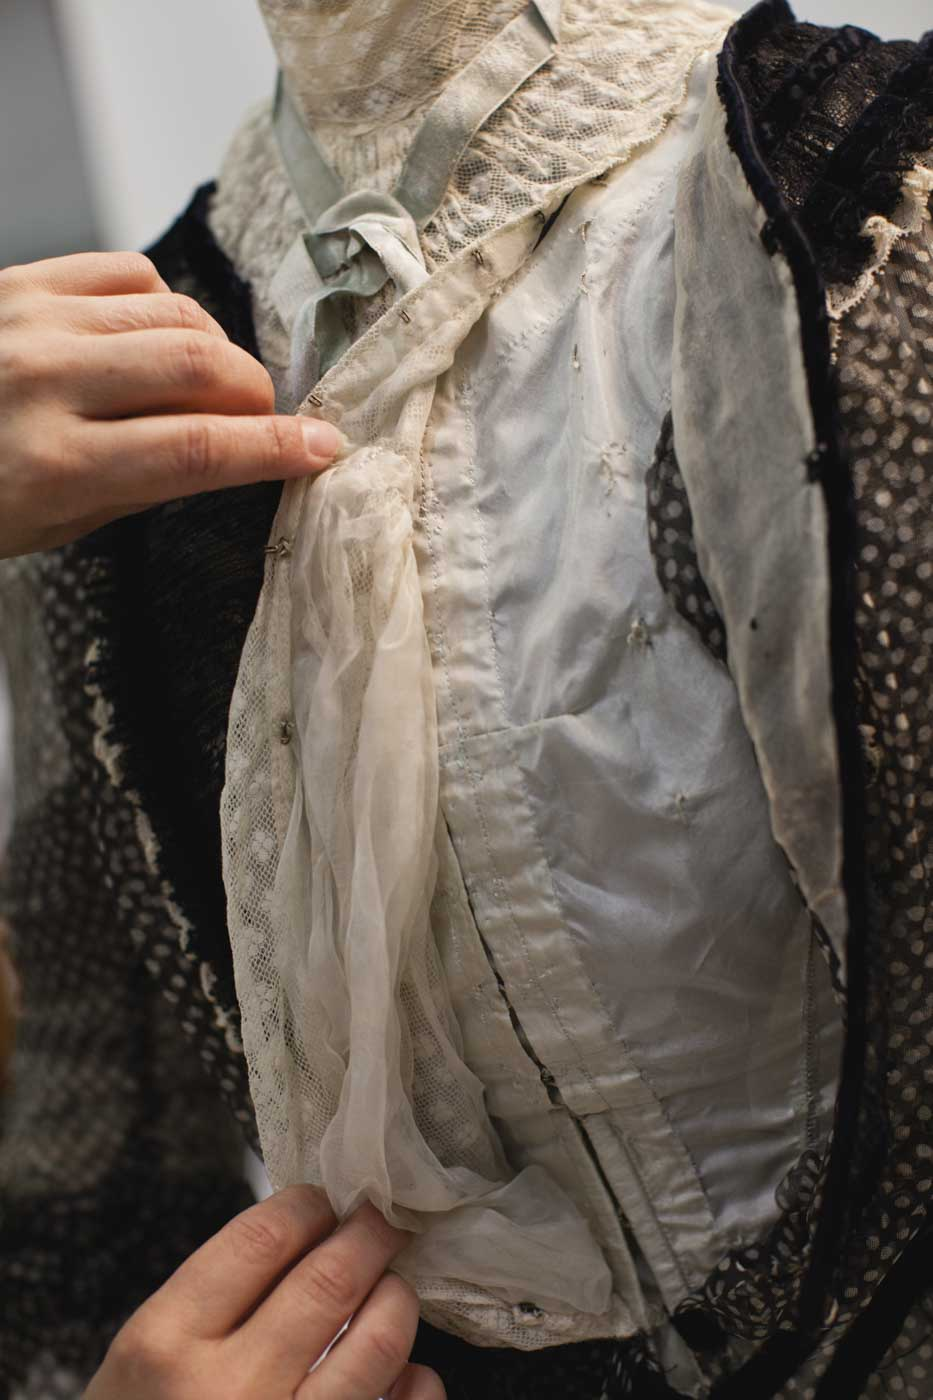 A conservator adjusts the front of a dress. - click to view larger image